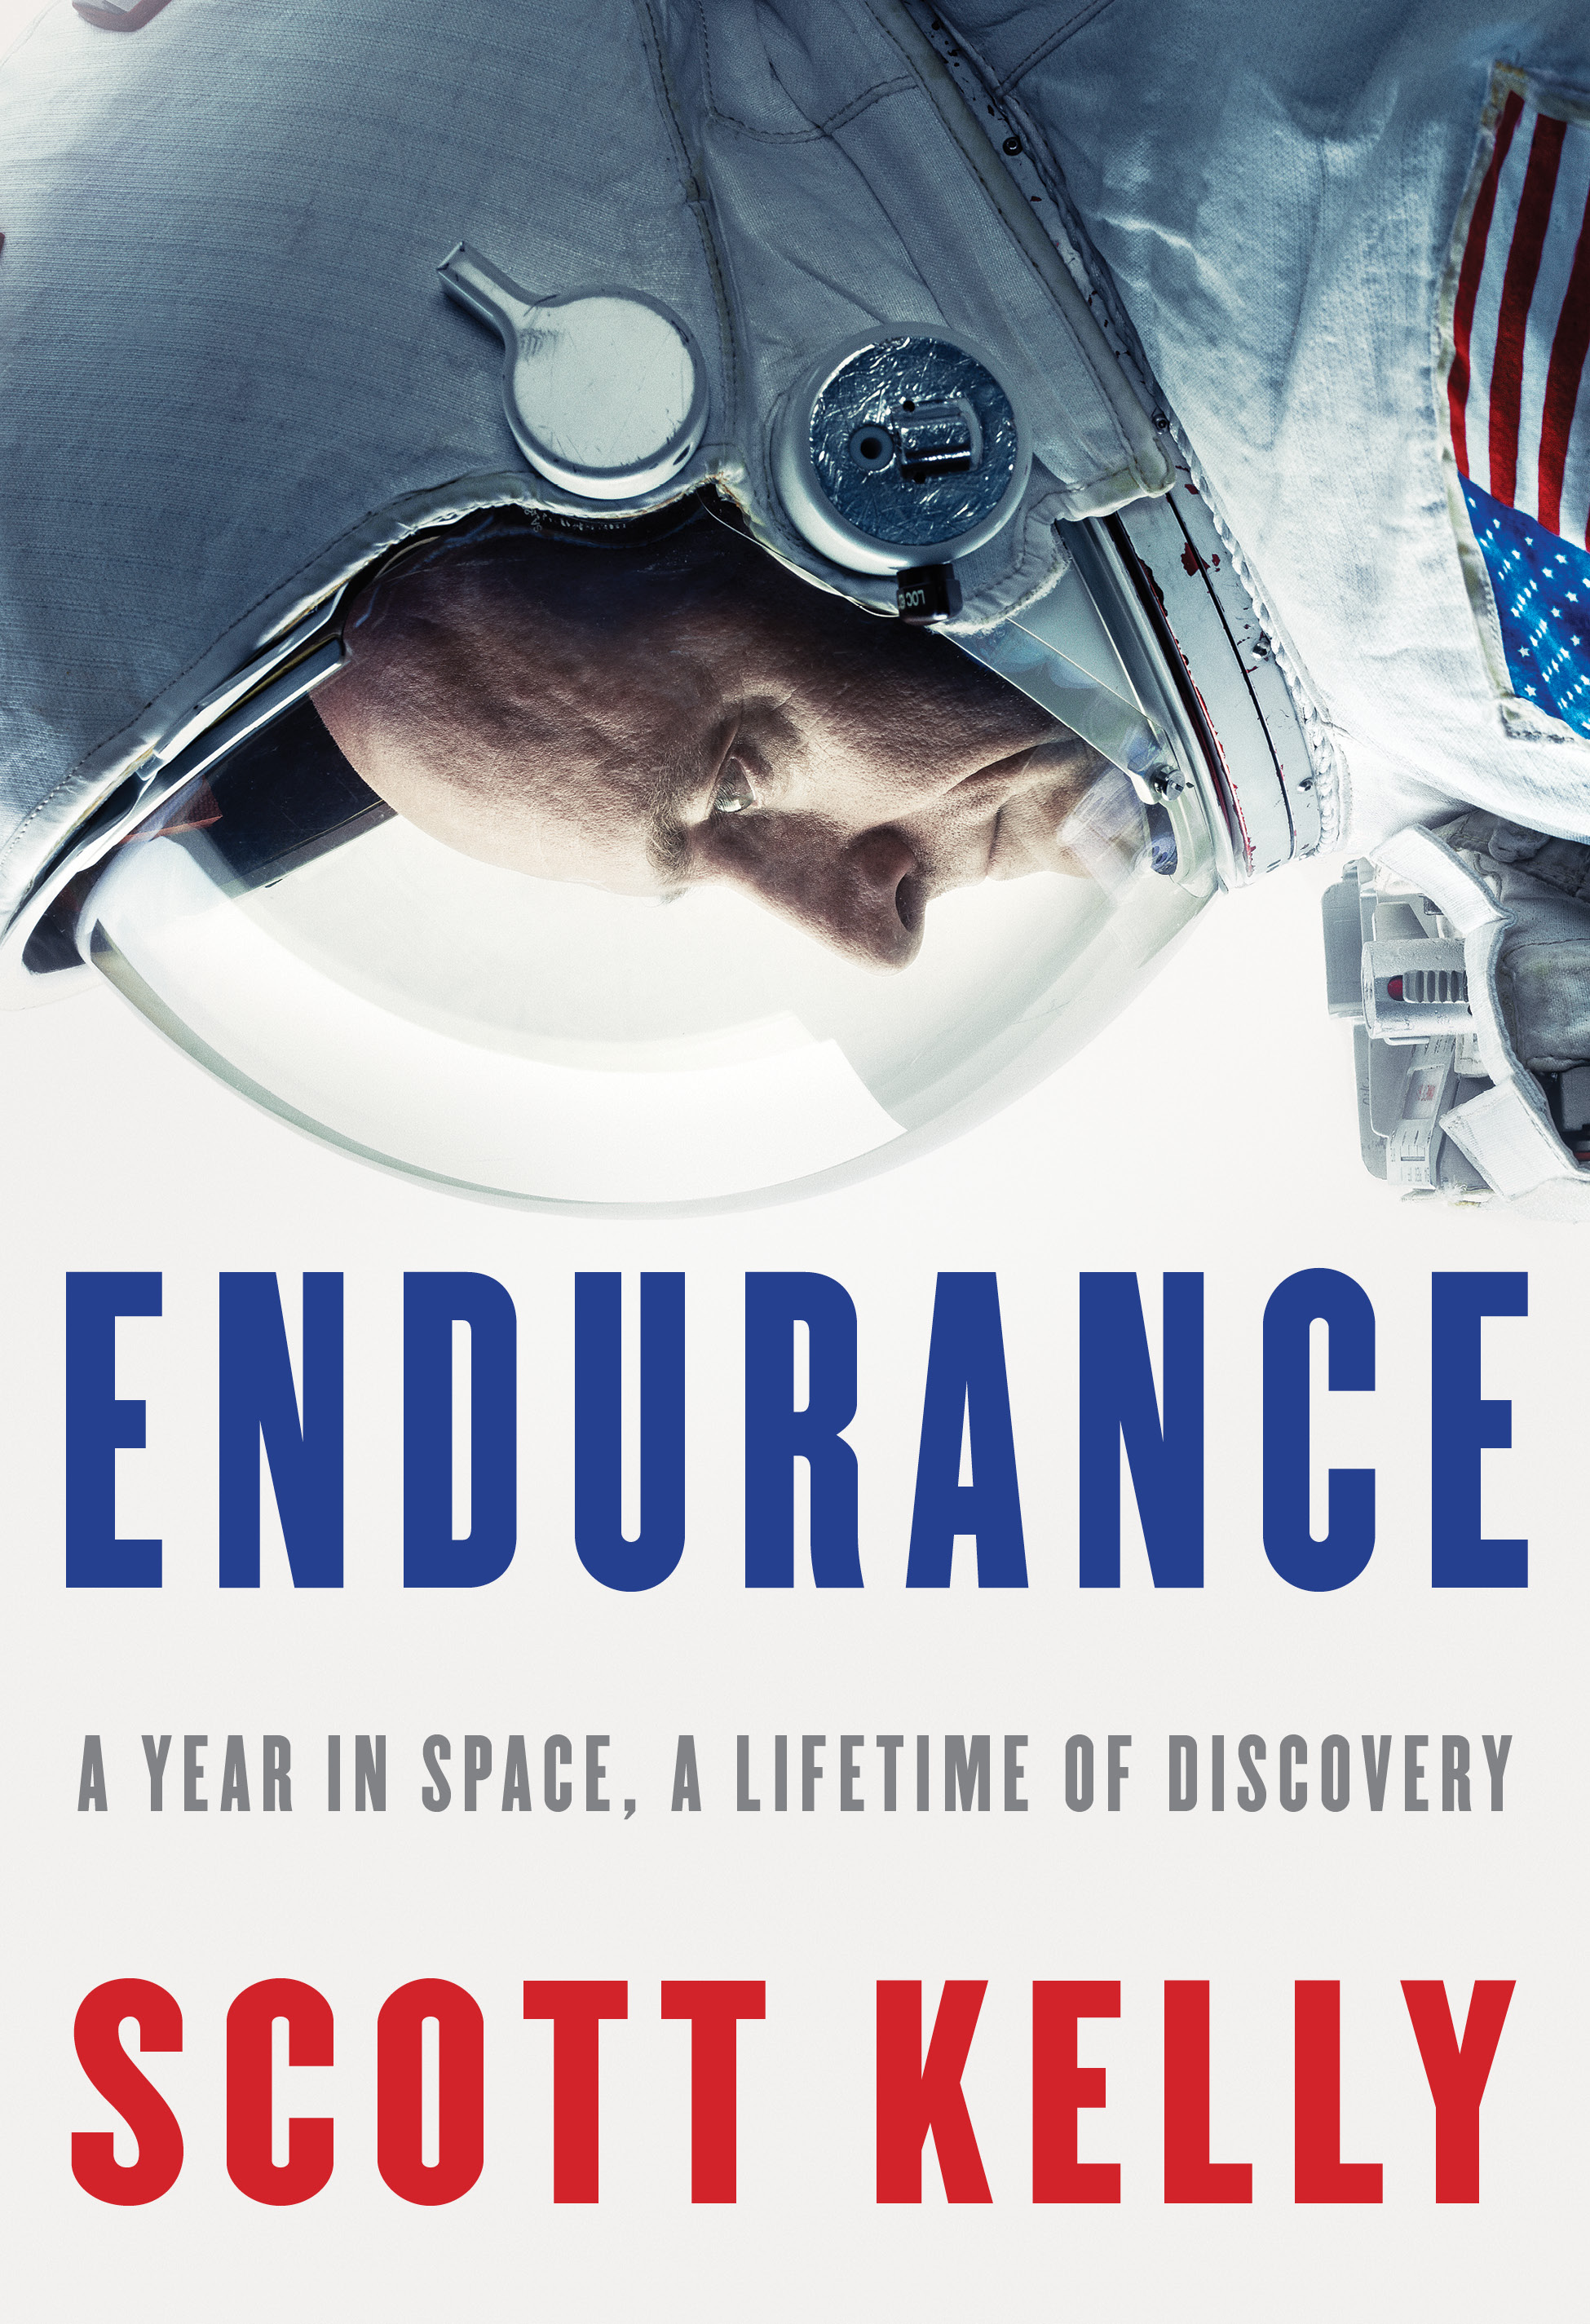 Endurance Book Cover Image.jpg